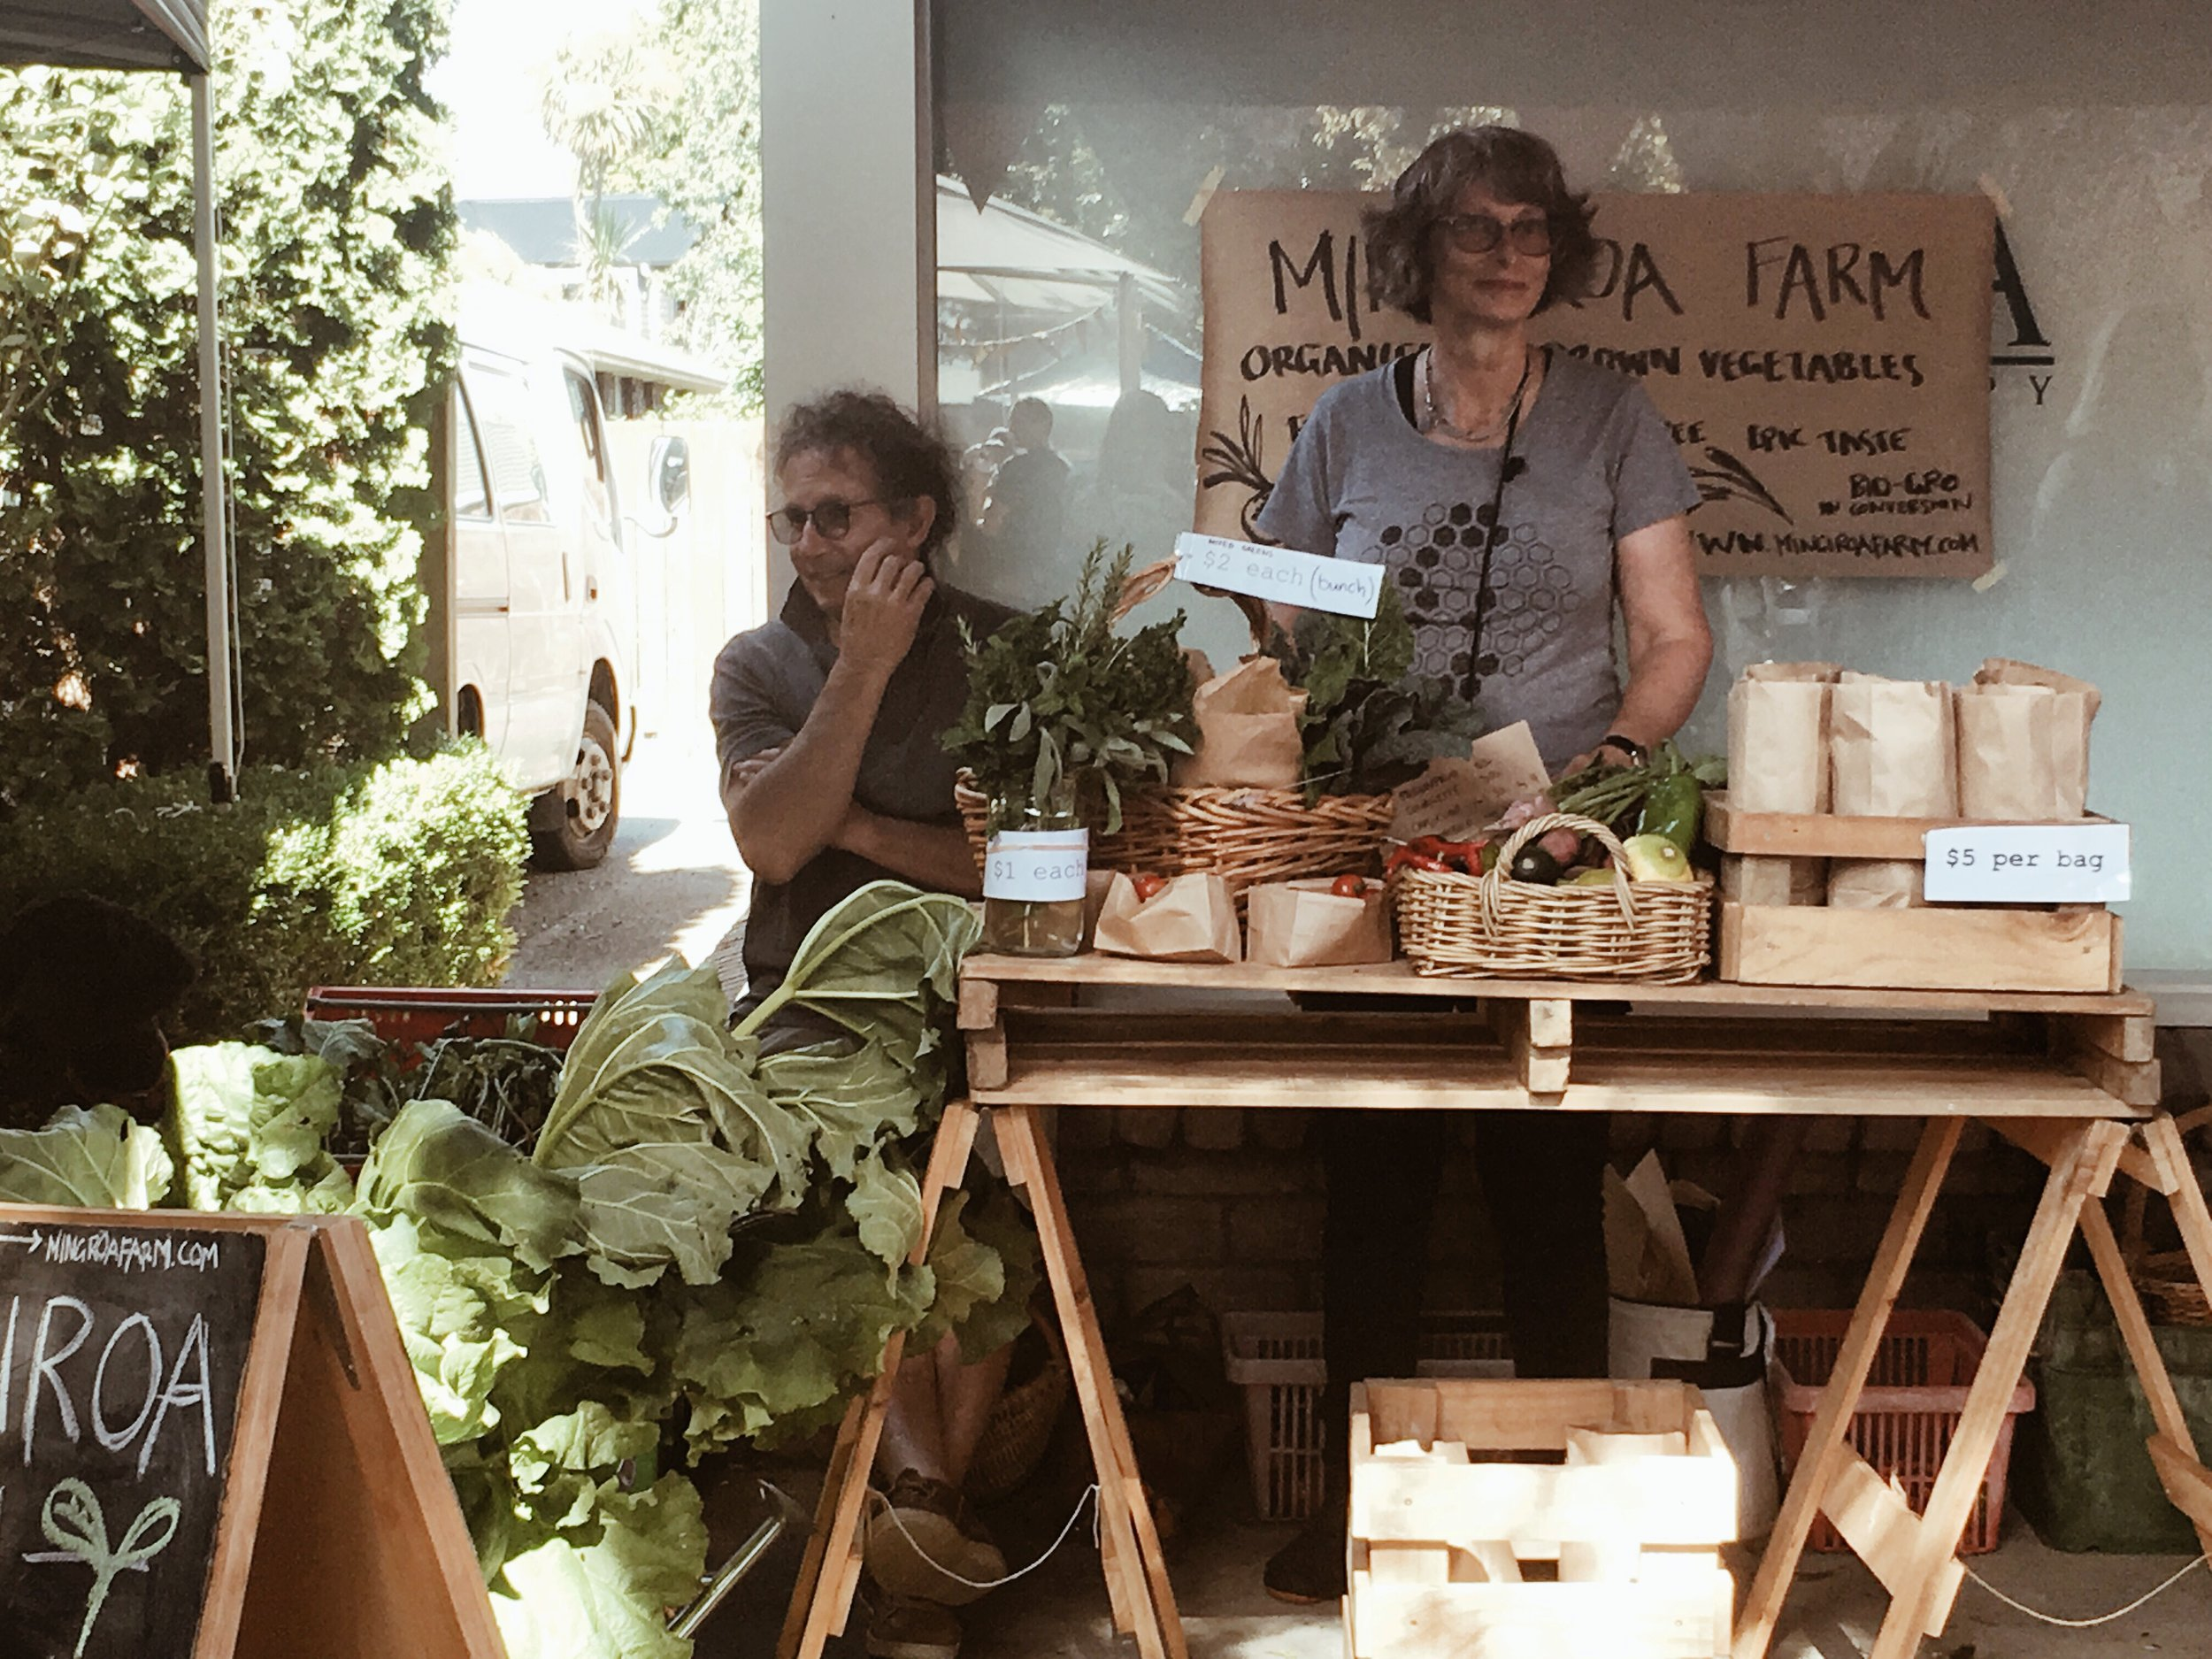 Sal and Richo with a table full of freshies at one of our favourite markets -Hokowhitu Farmers Market,Palmerston North.